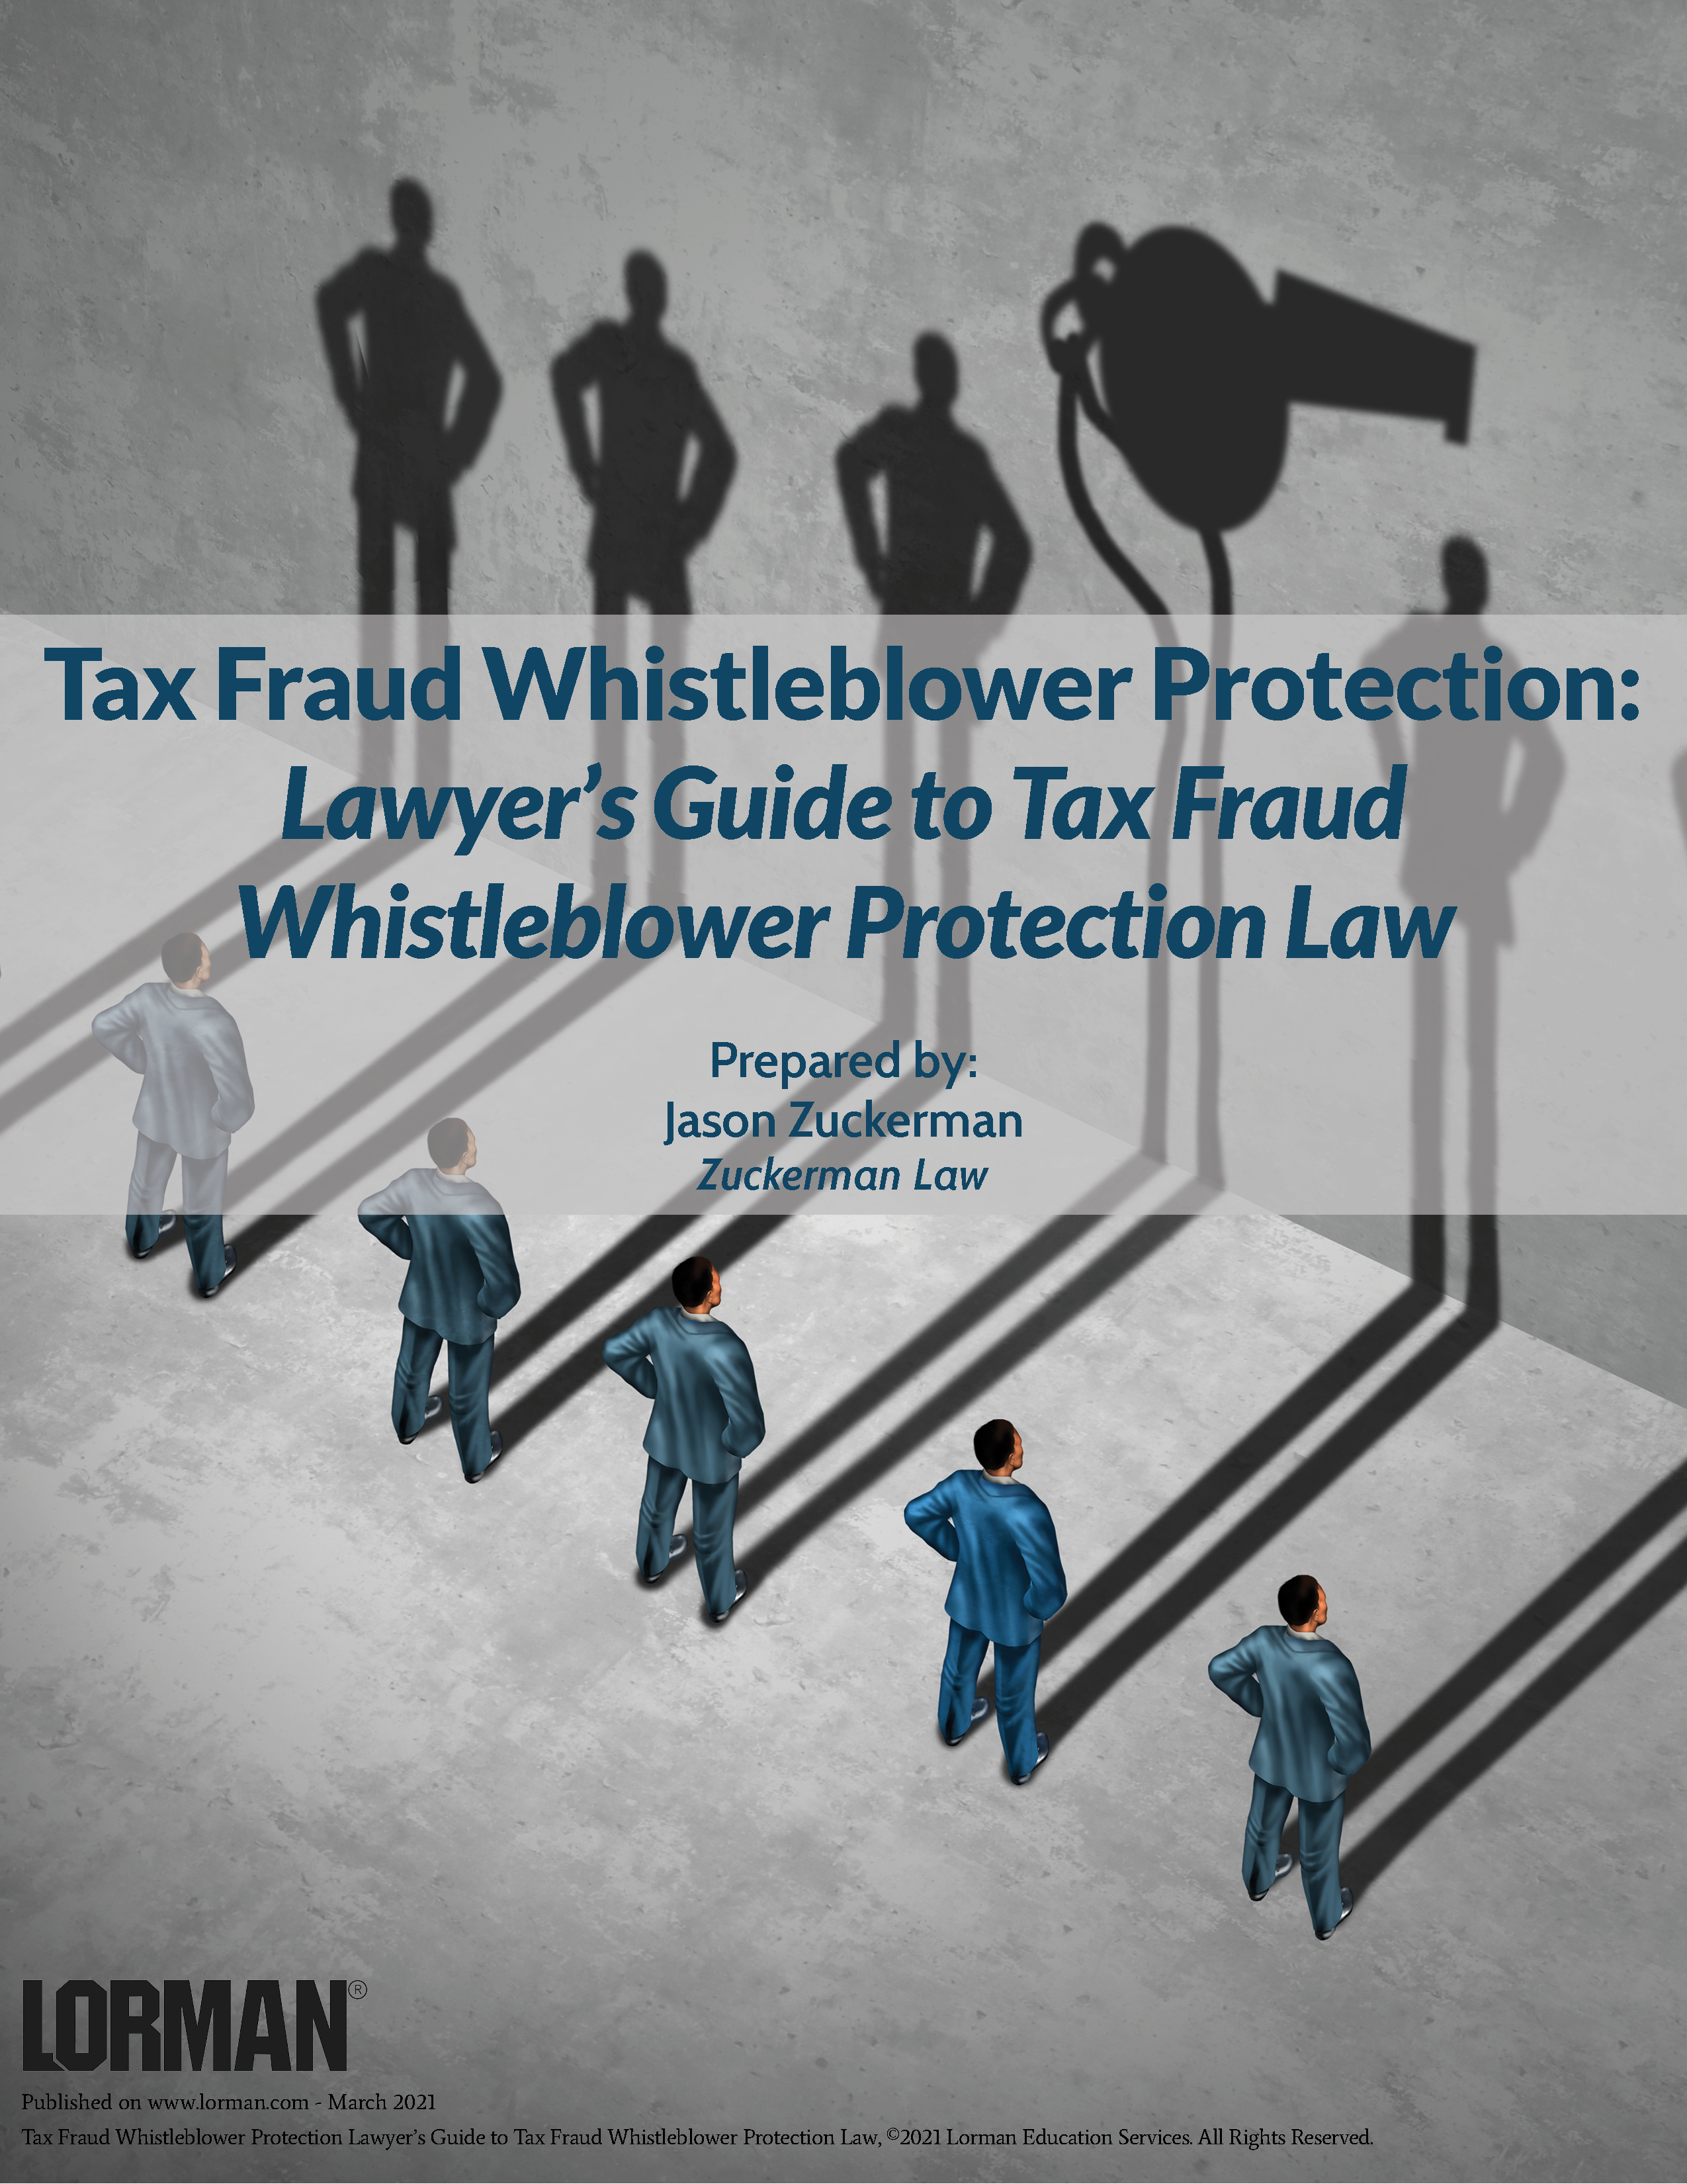 Tax Fraud Whistleblower Protection